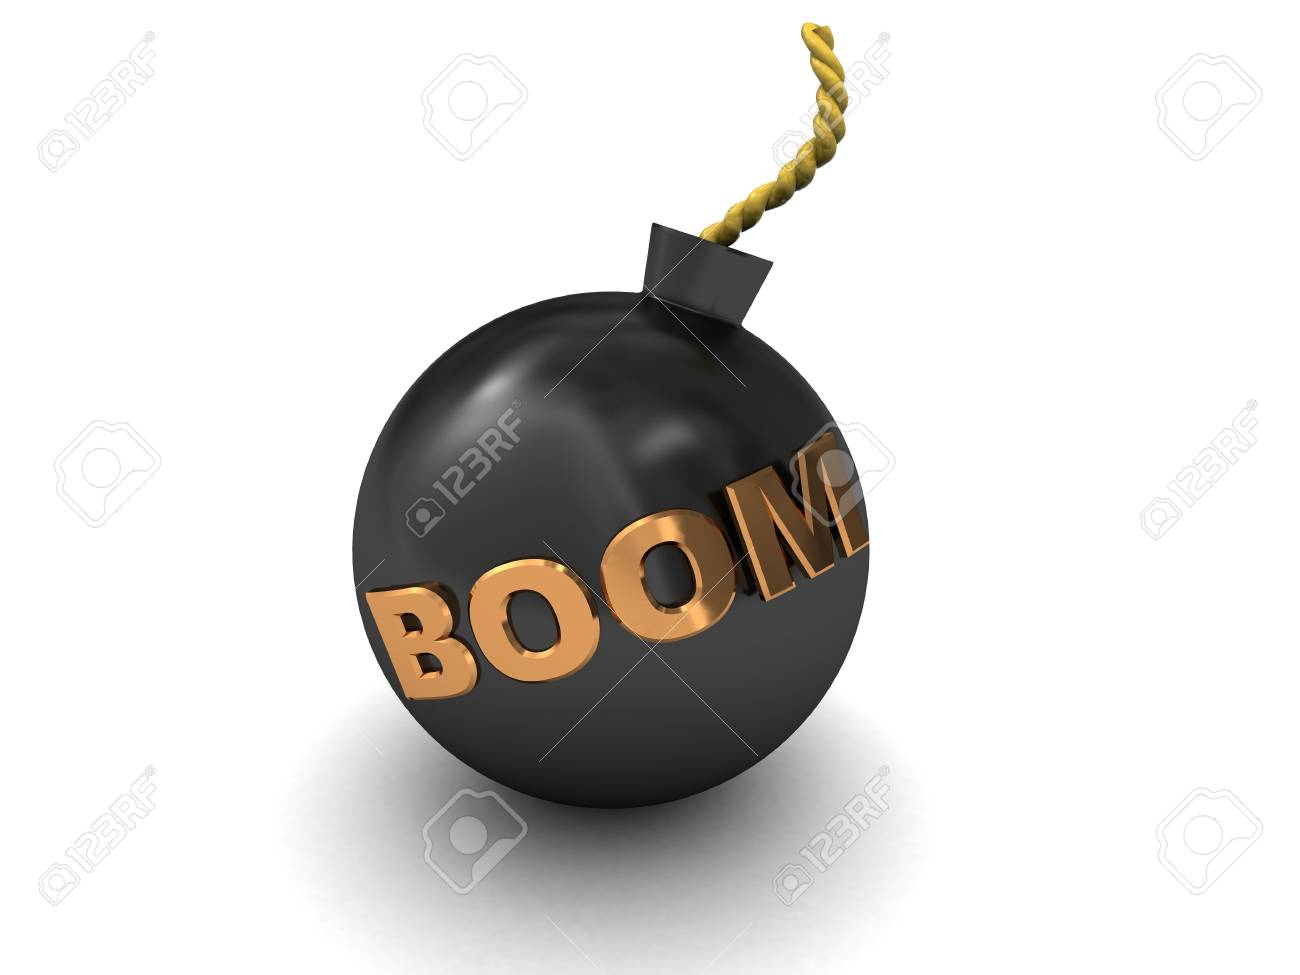 3d illustration of bomb over white background with 'boom' caption Stock Photo - 5961587